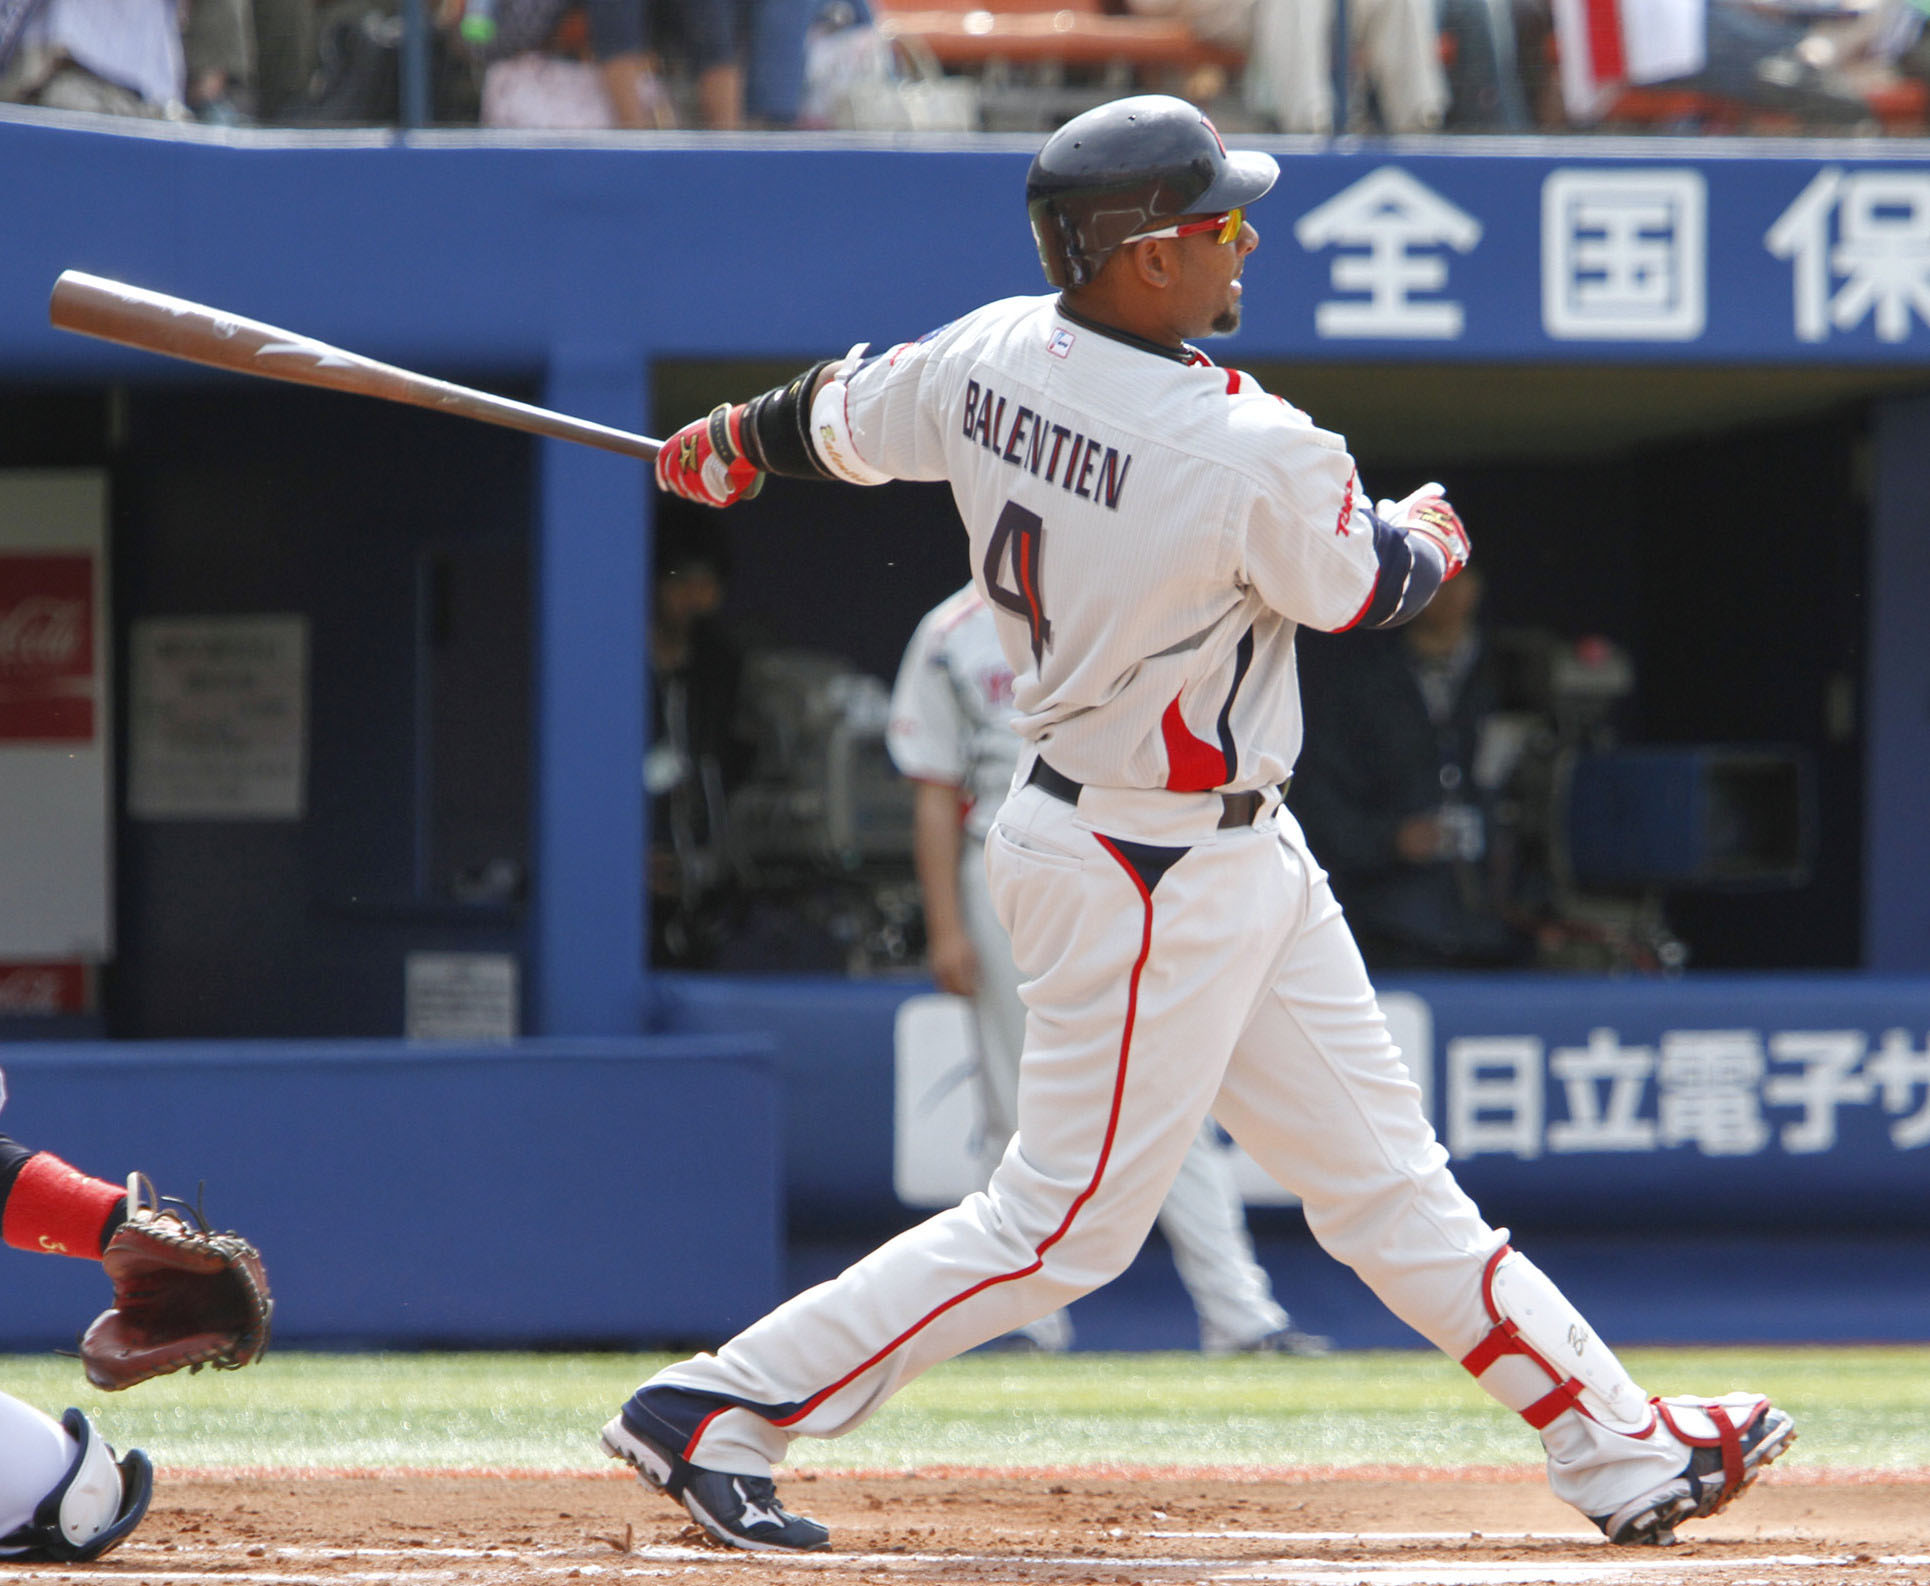 Key veteran: The Tokyo Yakult Swallows expect Wladimir Balentien (pictured) to be one of their top run producers this season. Balentien has been working his way back into shape after sustaining a groin injury during the World Baseball Classic. | KYODO